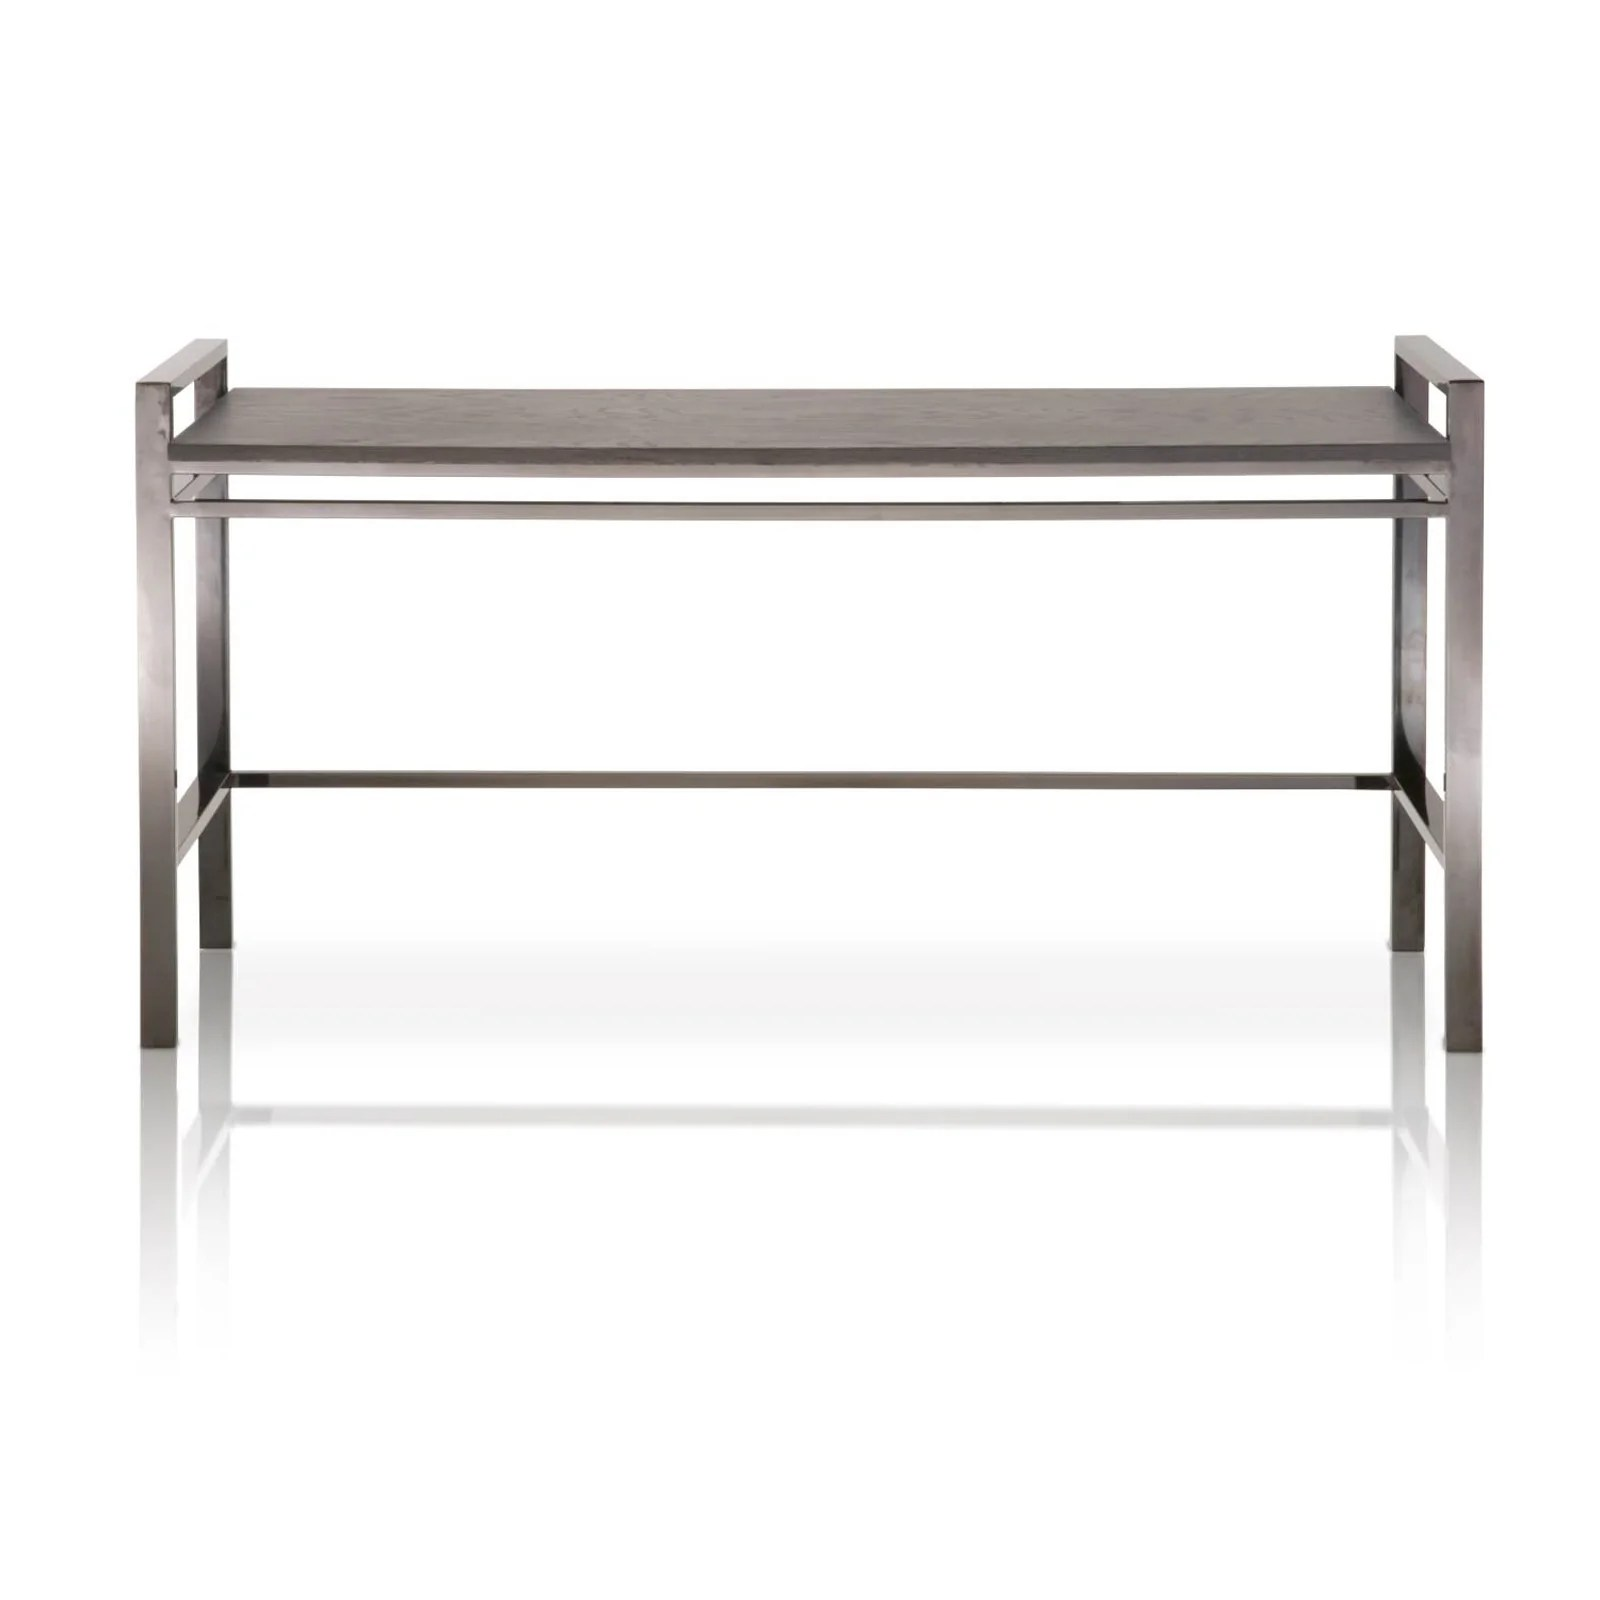 star furniture sofa table sleeper for camping amazing deal on international 2455 st bwo